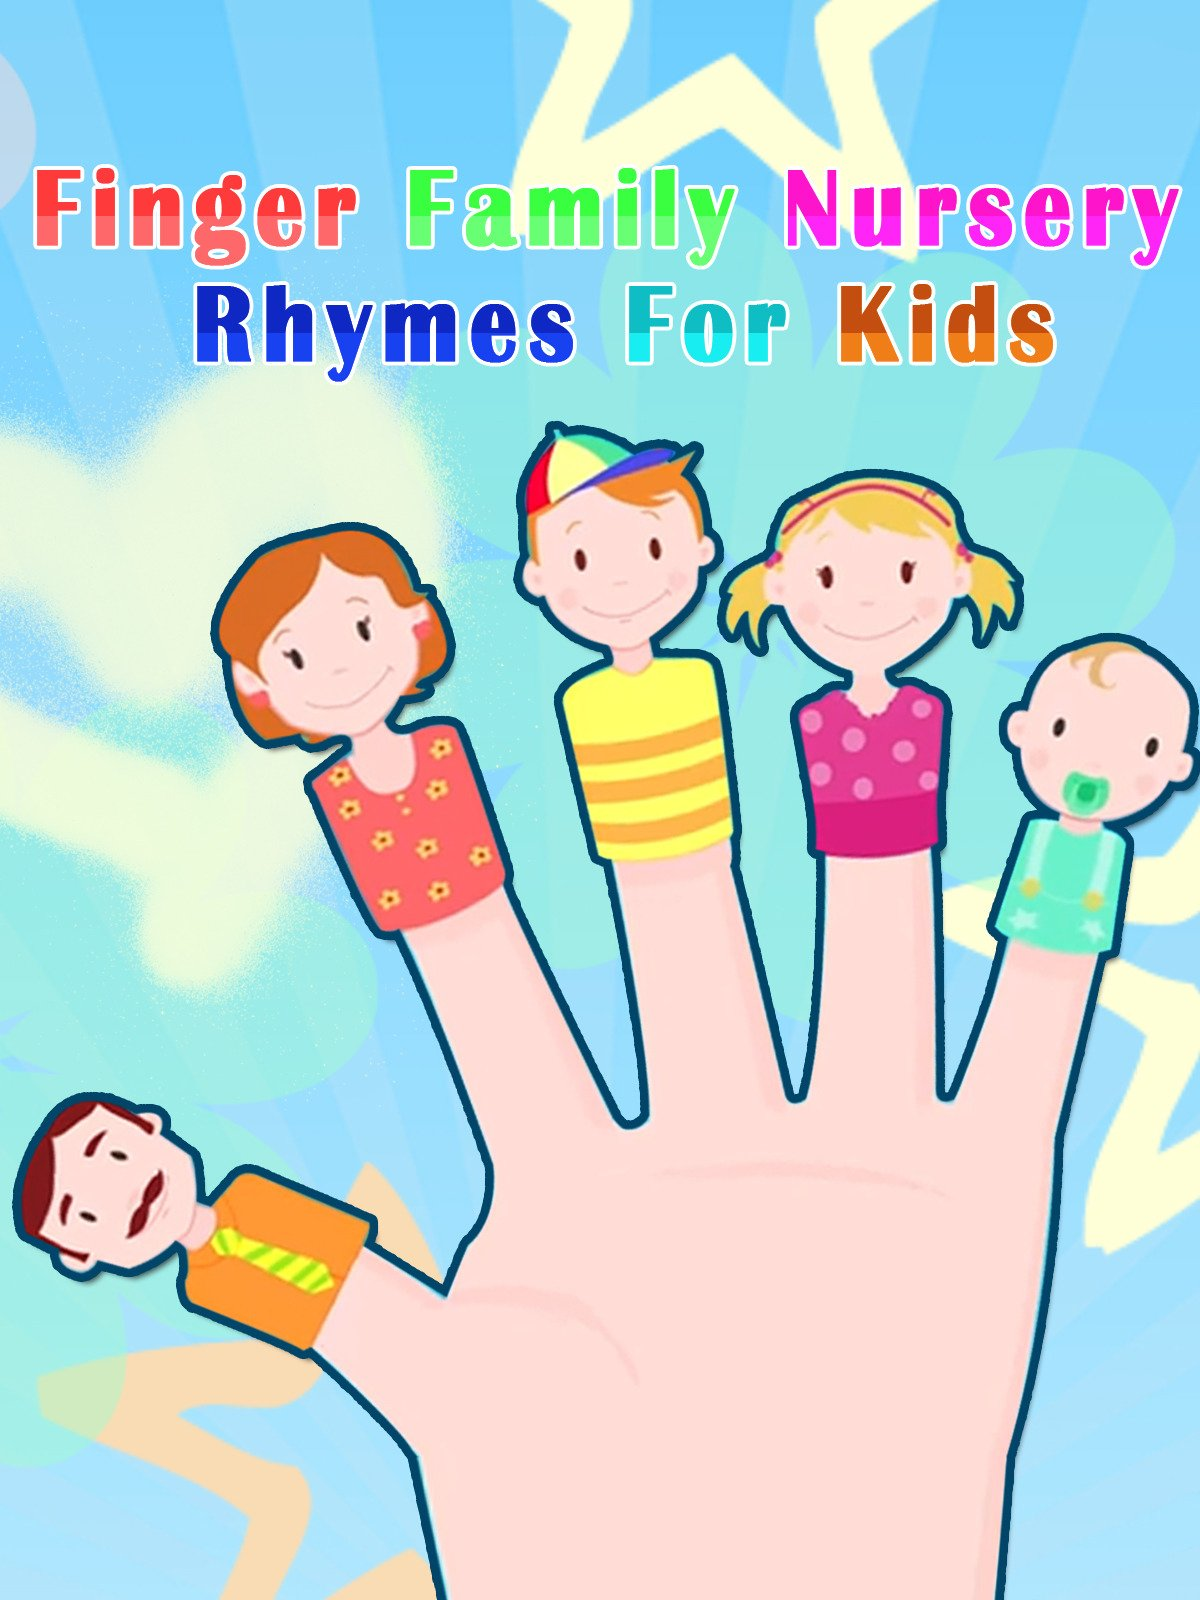 Finger Family Nursery Rhymes For Kids